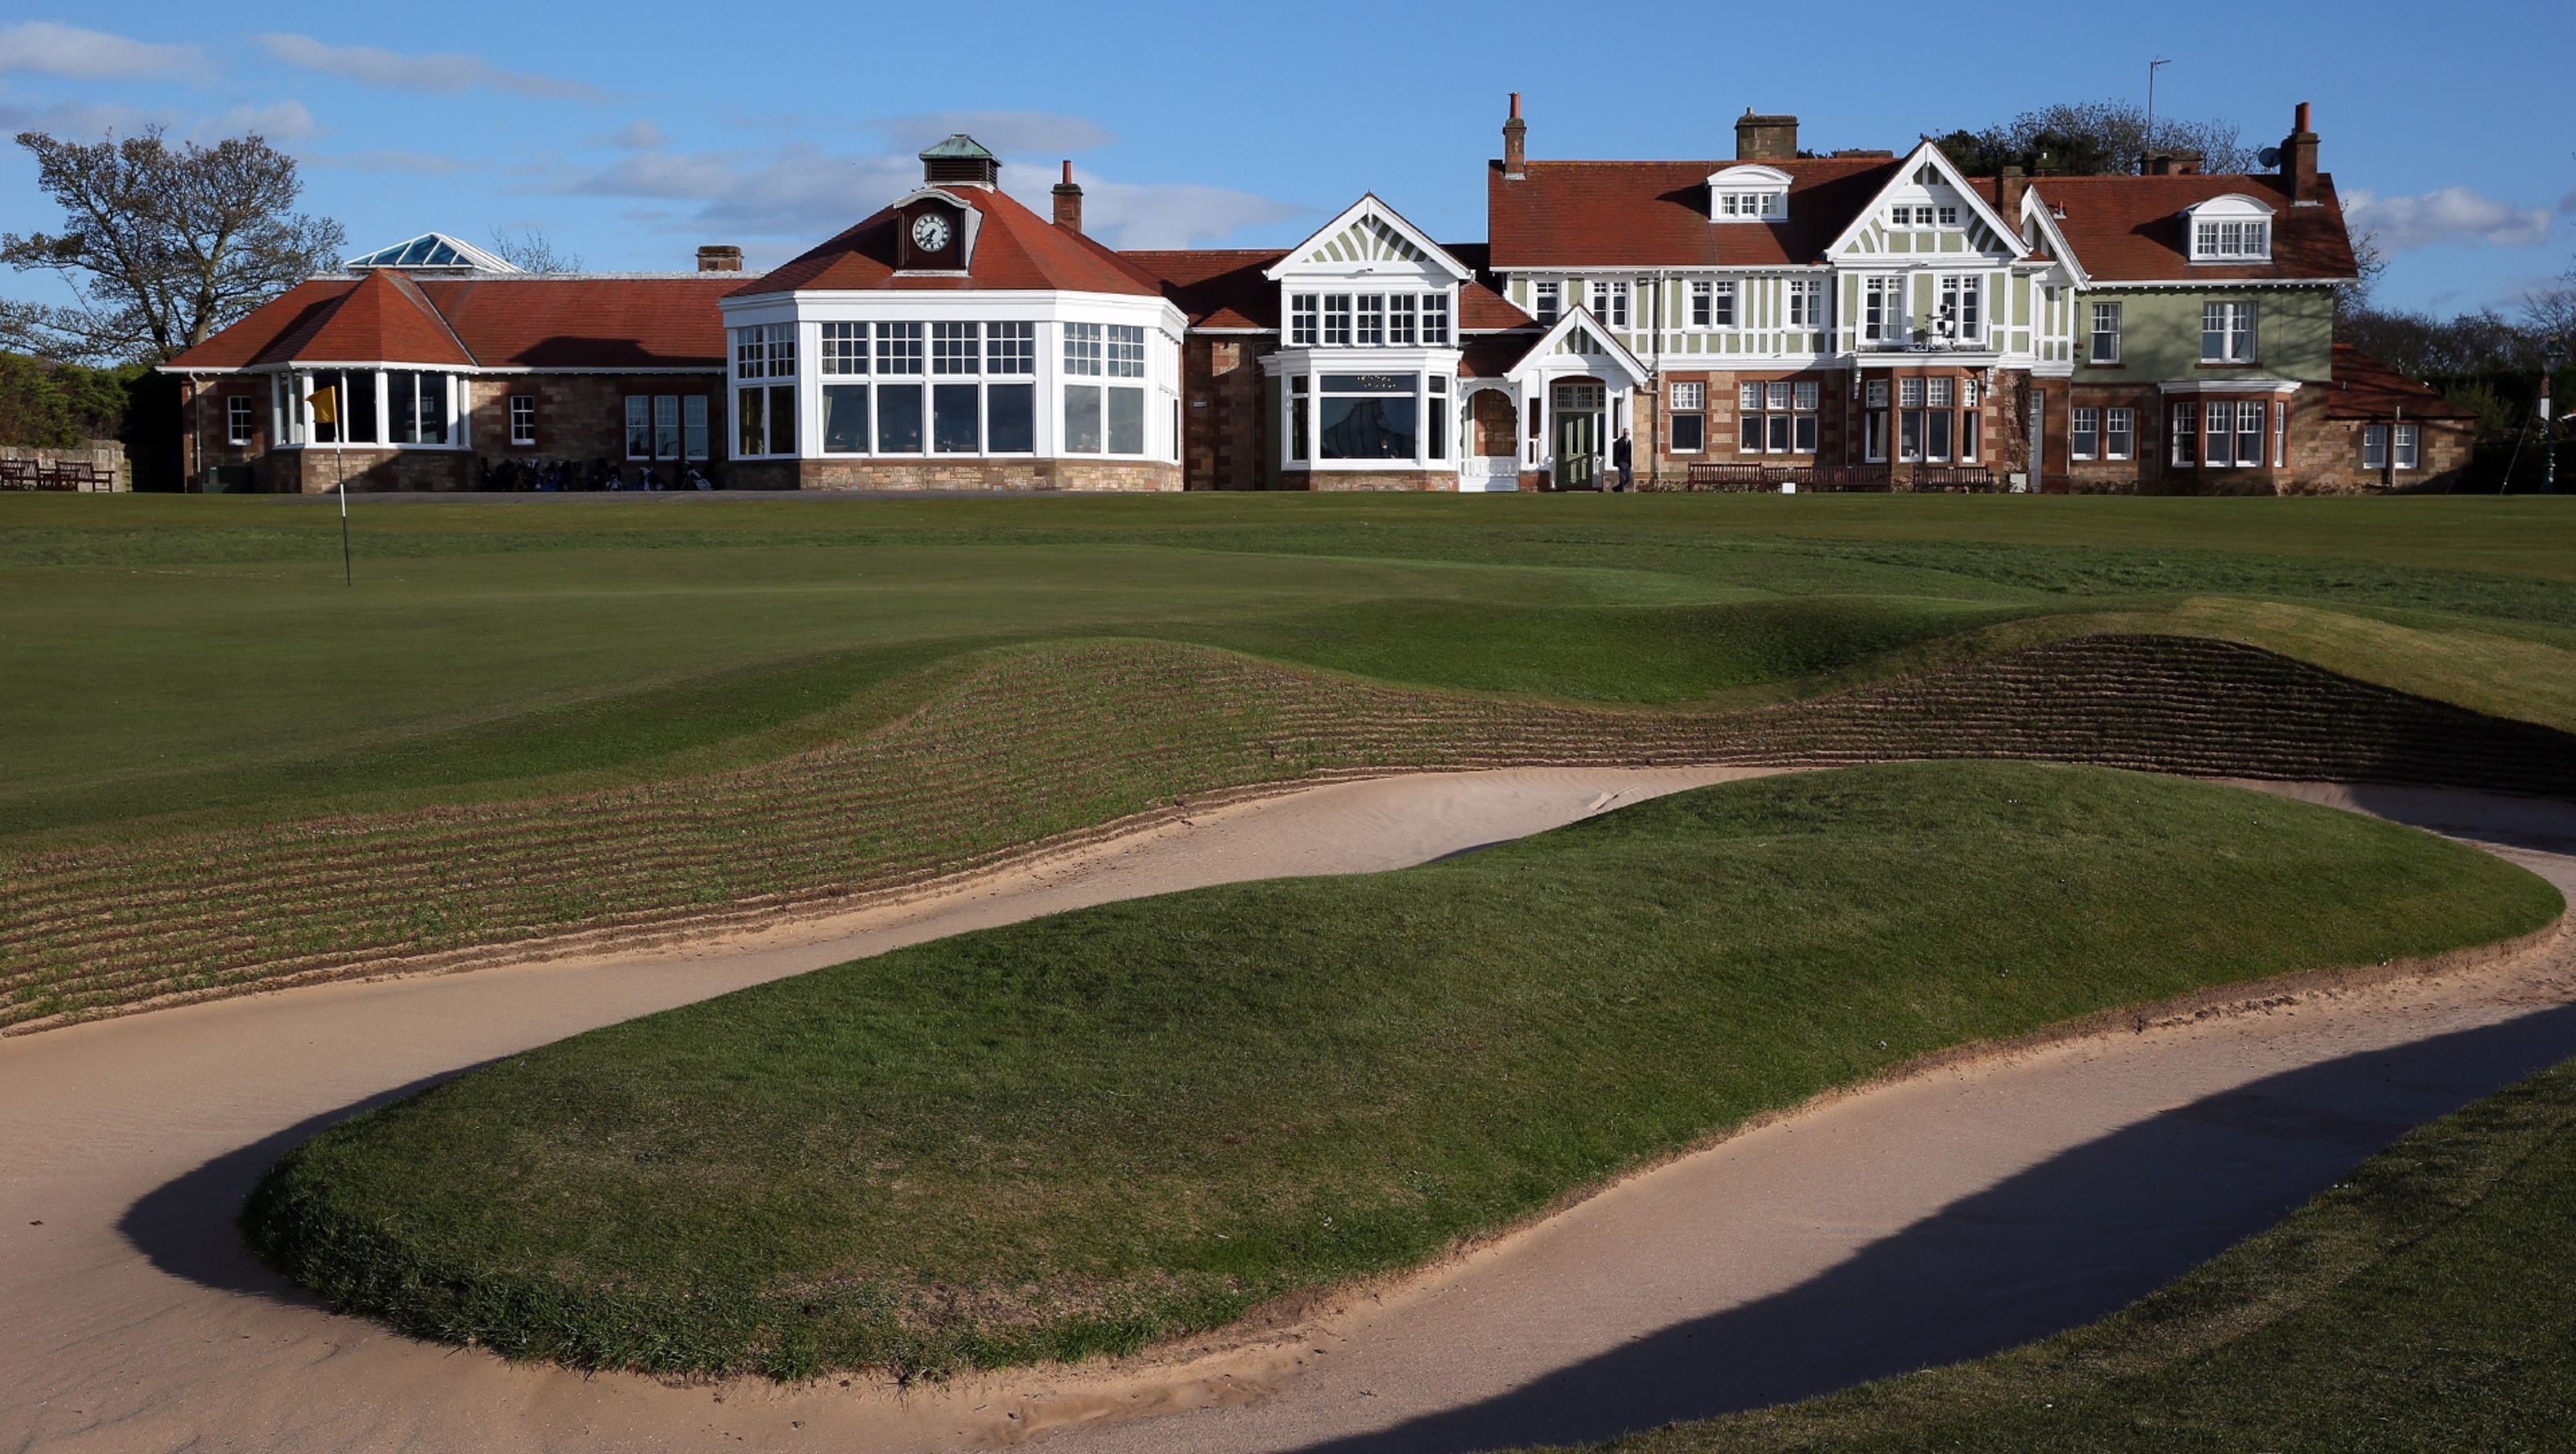 The Honourable Company of Edinburgh Golfers' clubhouse at Muirfield.